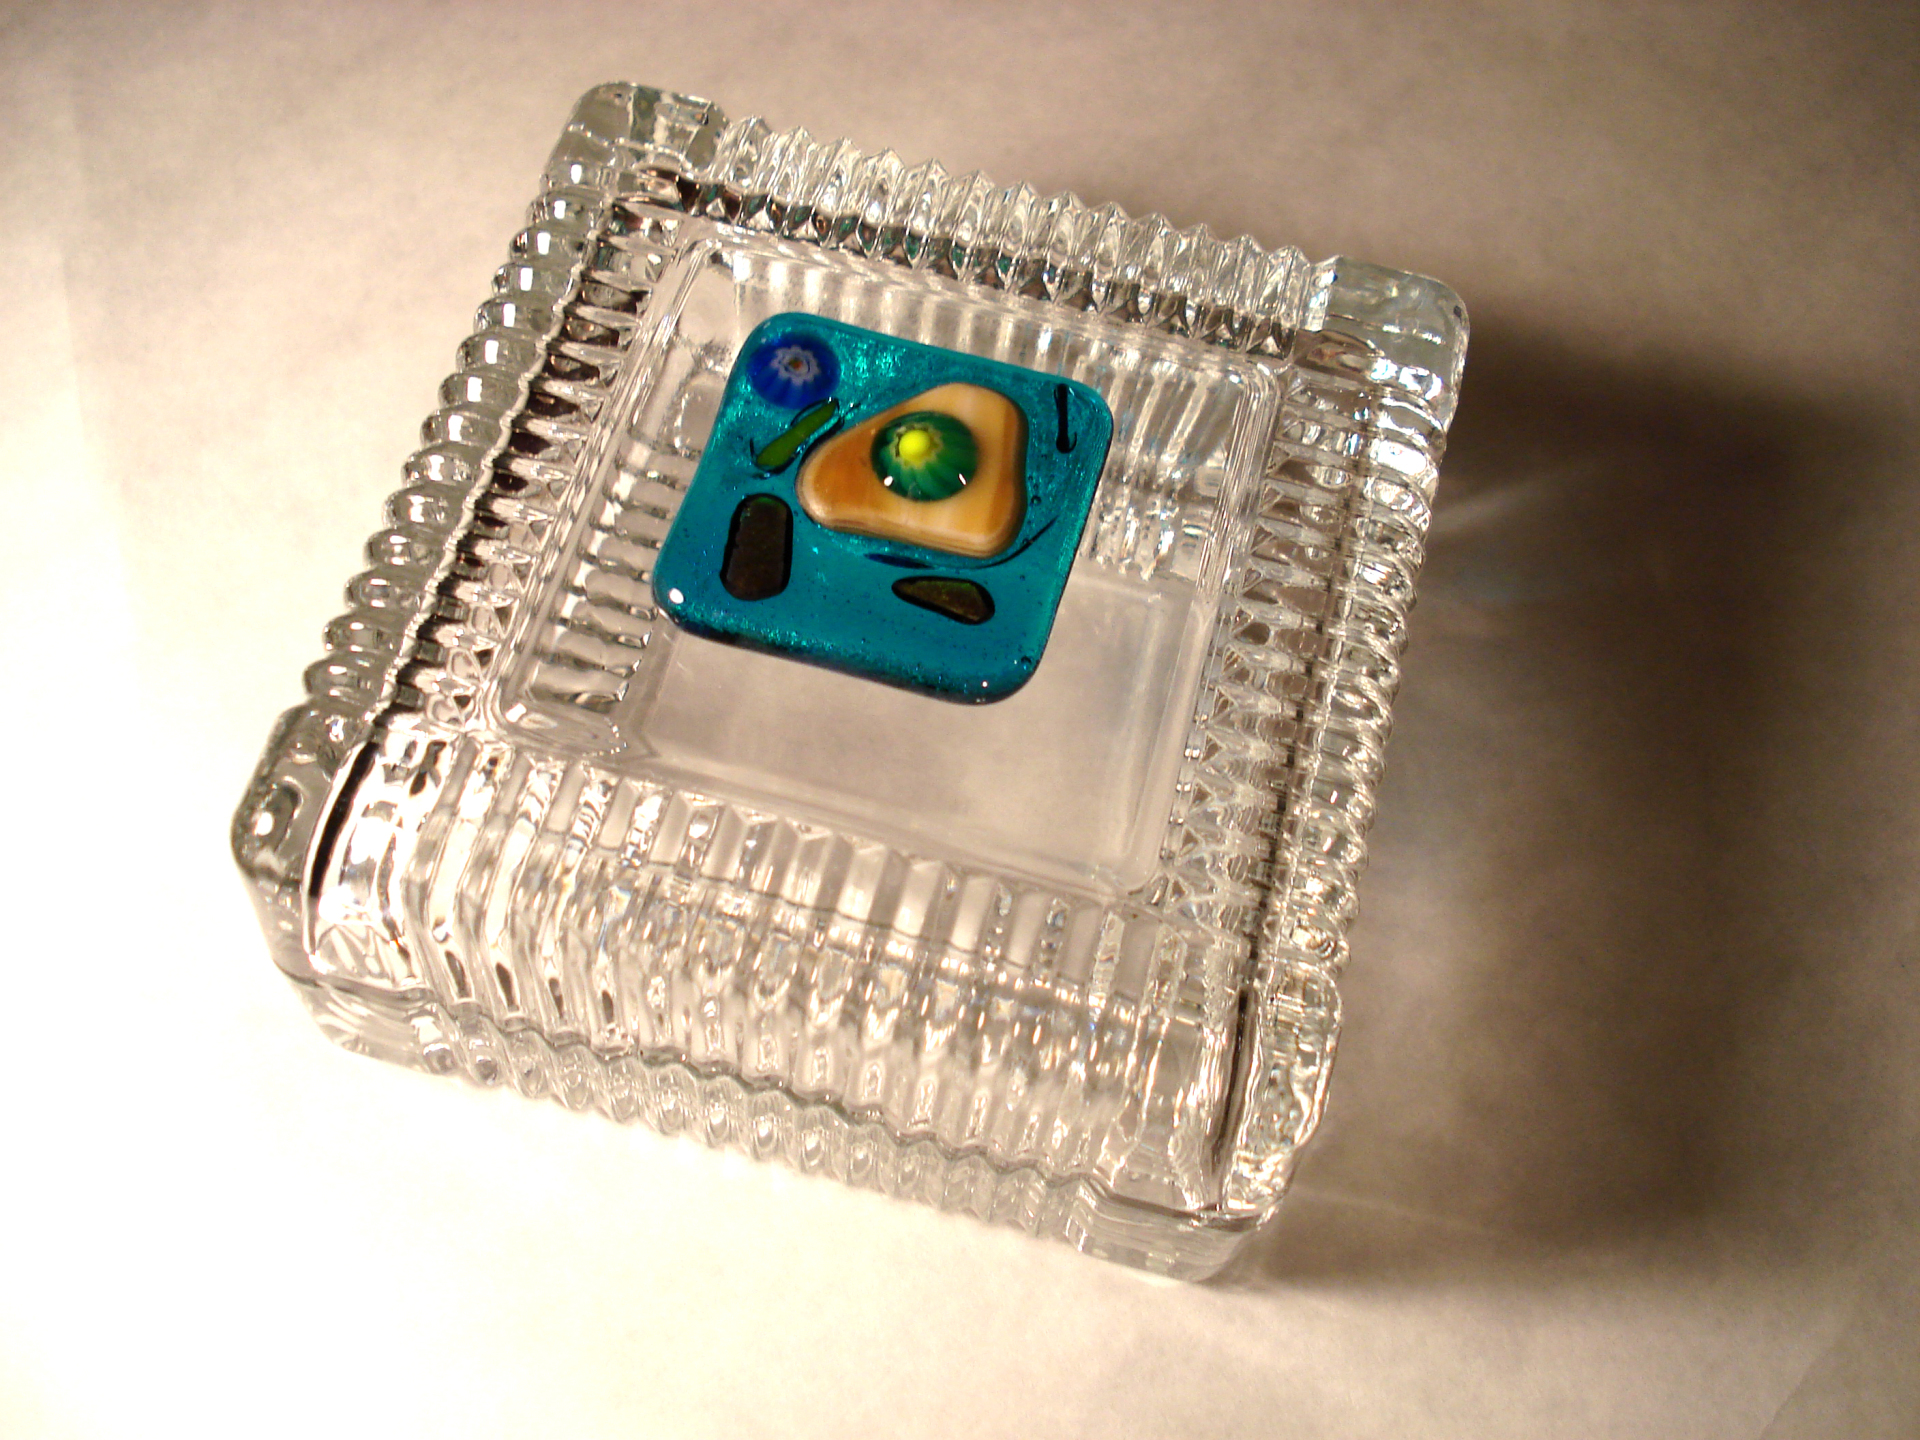 Fused glass trinket box